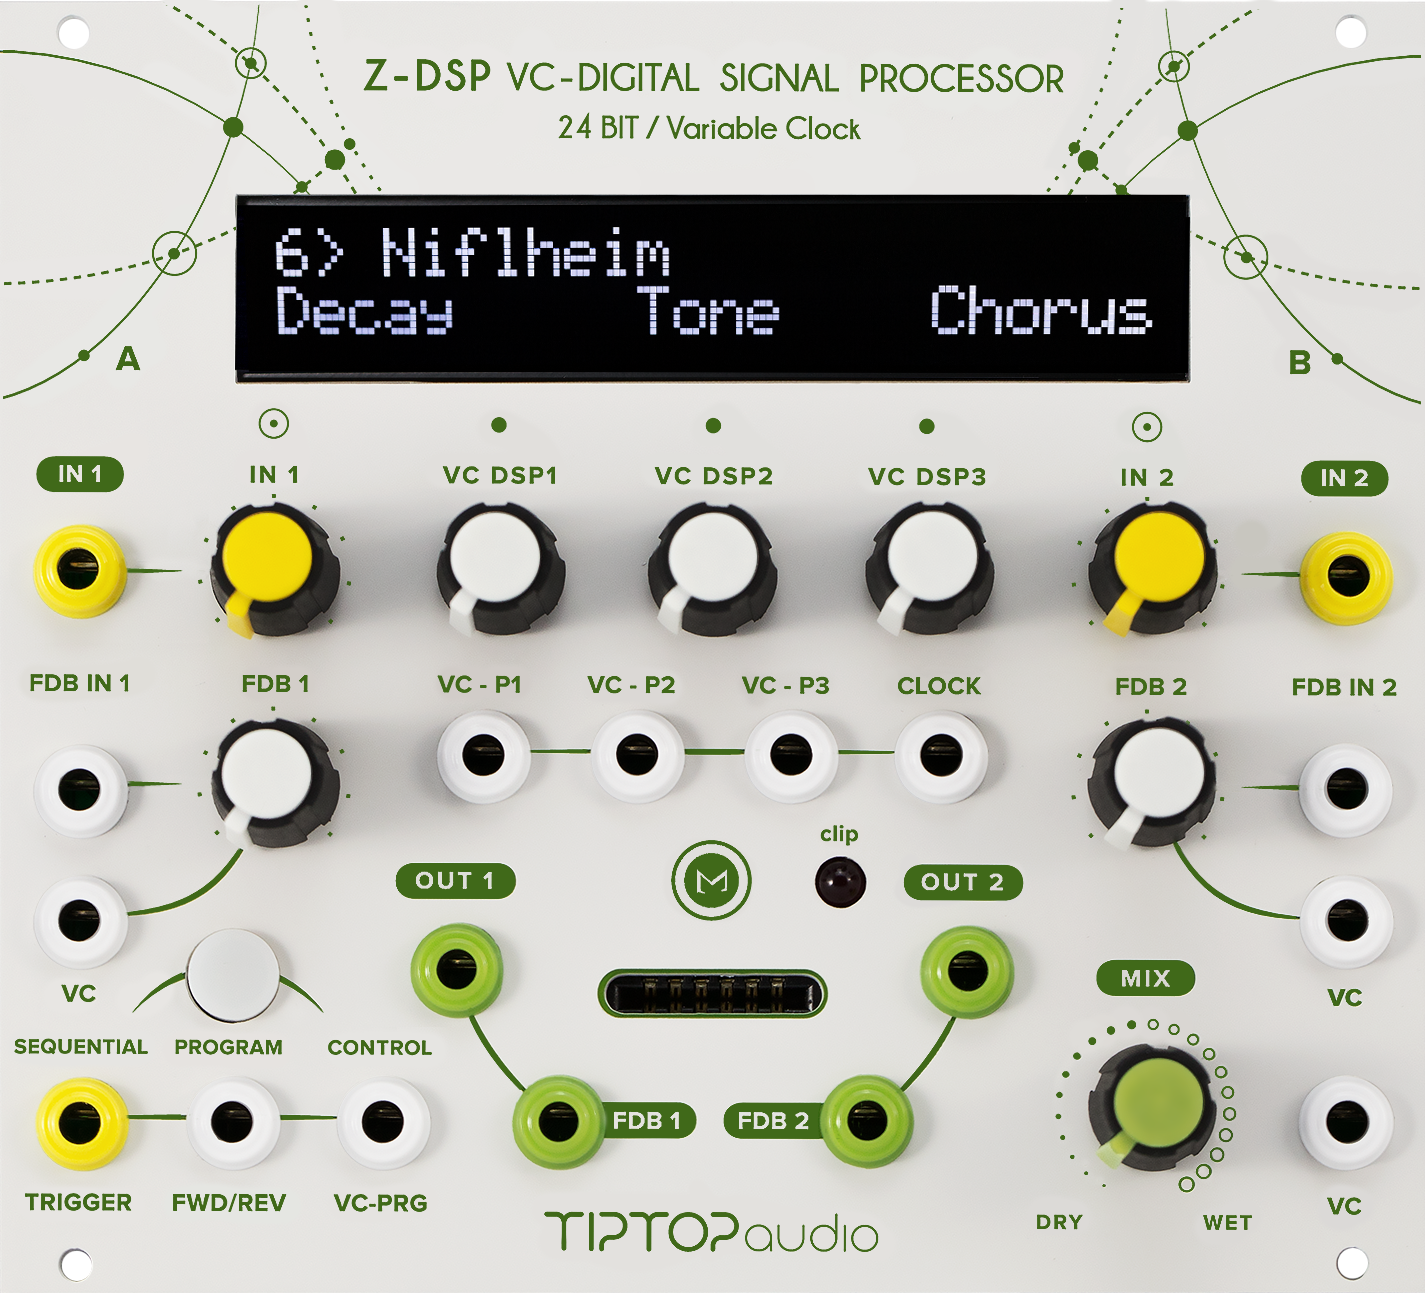 Z Dsp Tiptop Audio The Expense And Complexity Of Creating A Custom Printed Circuit Board Audios Is Cartridge Based Open Source Digital Sound Processing Effects Generating Platform For Your Modular Synthesizer